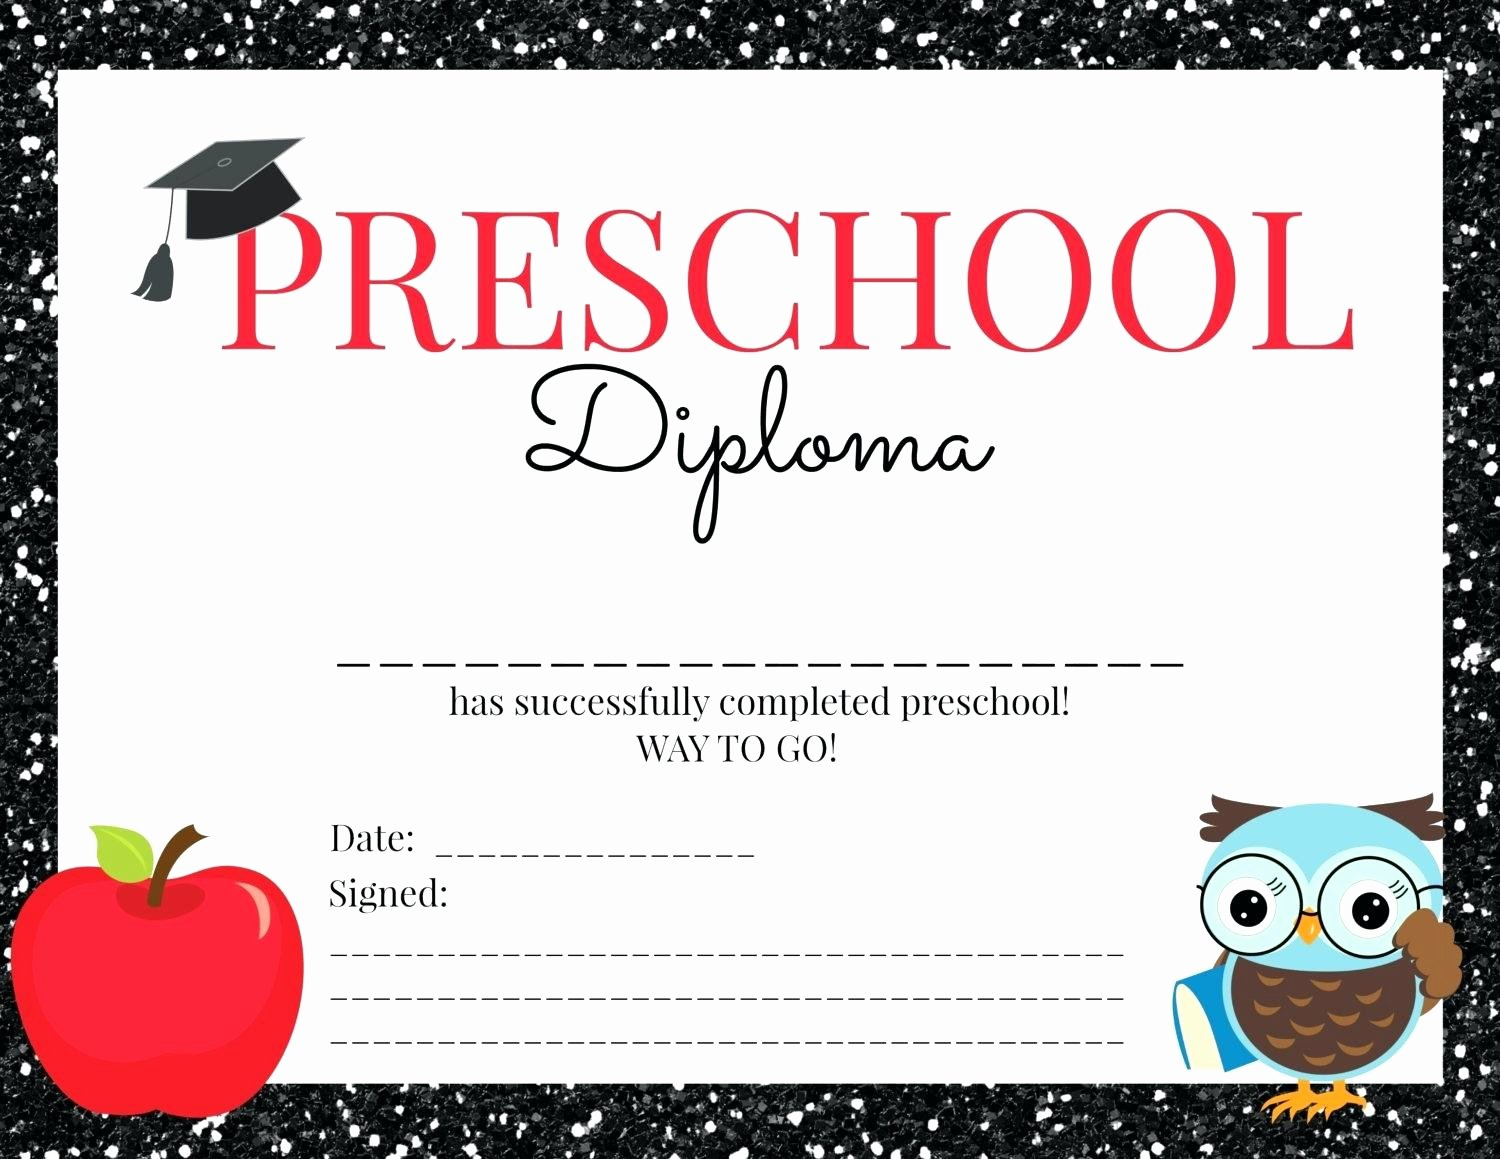 preschool certificate template graduation for kids free printable templates microsoft